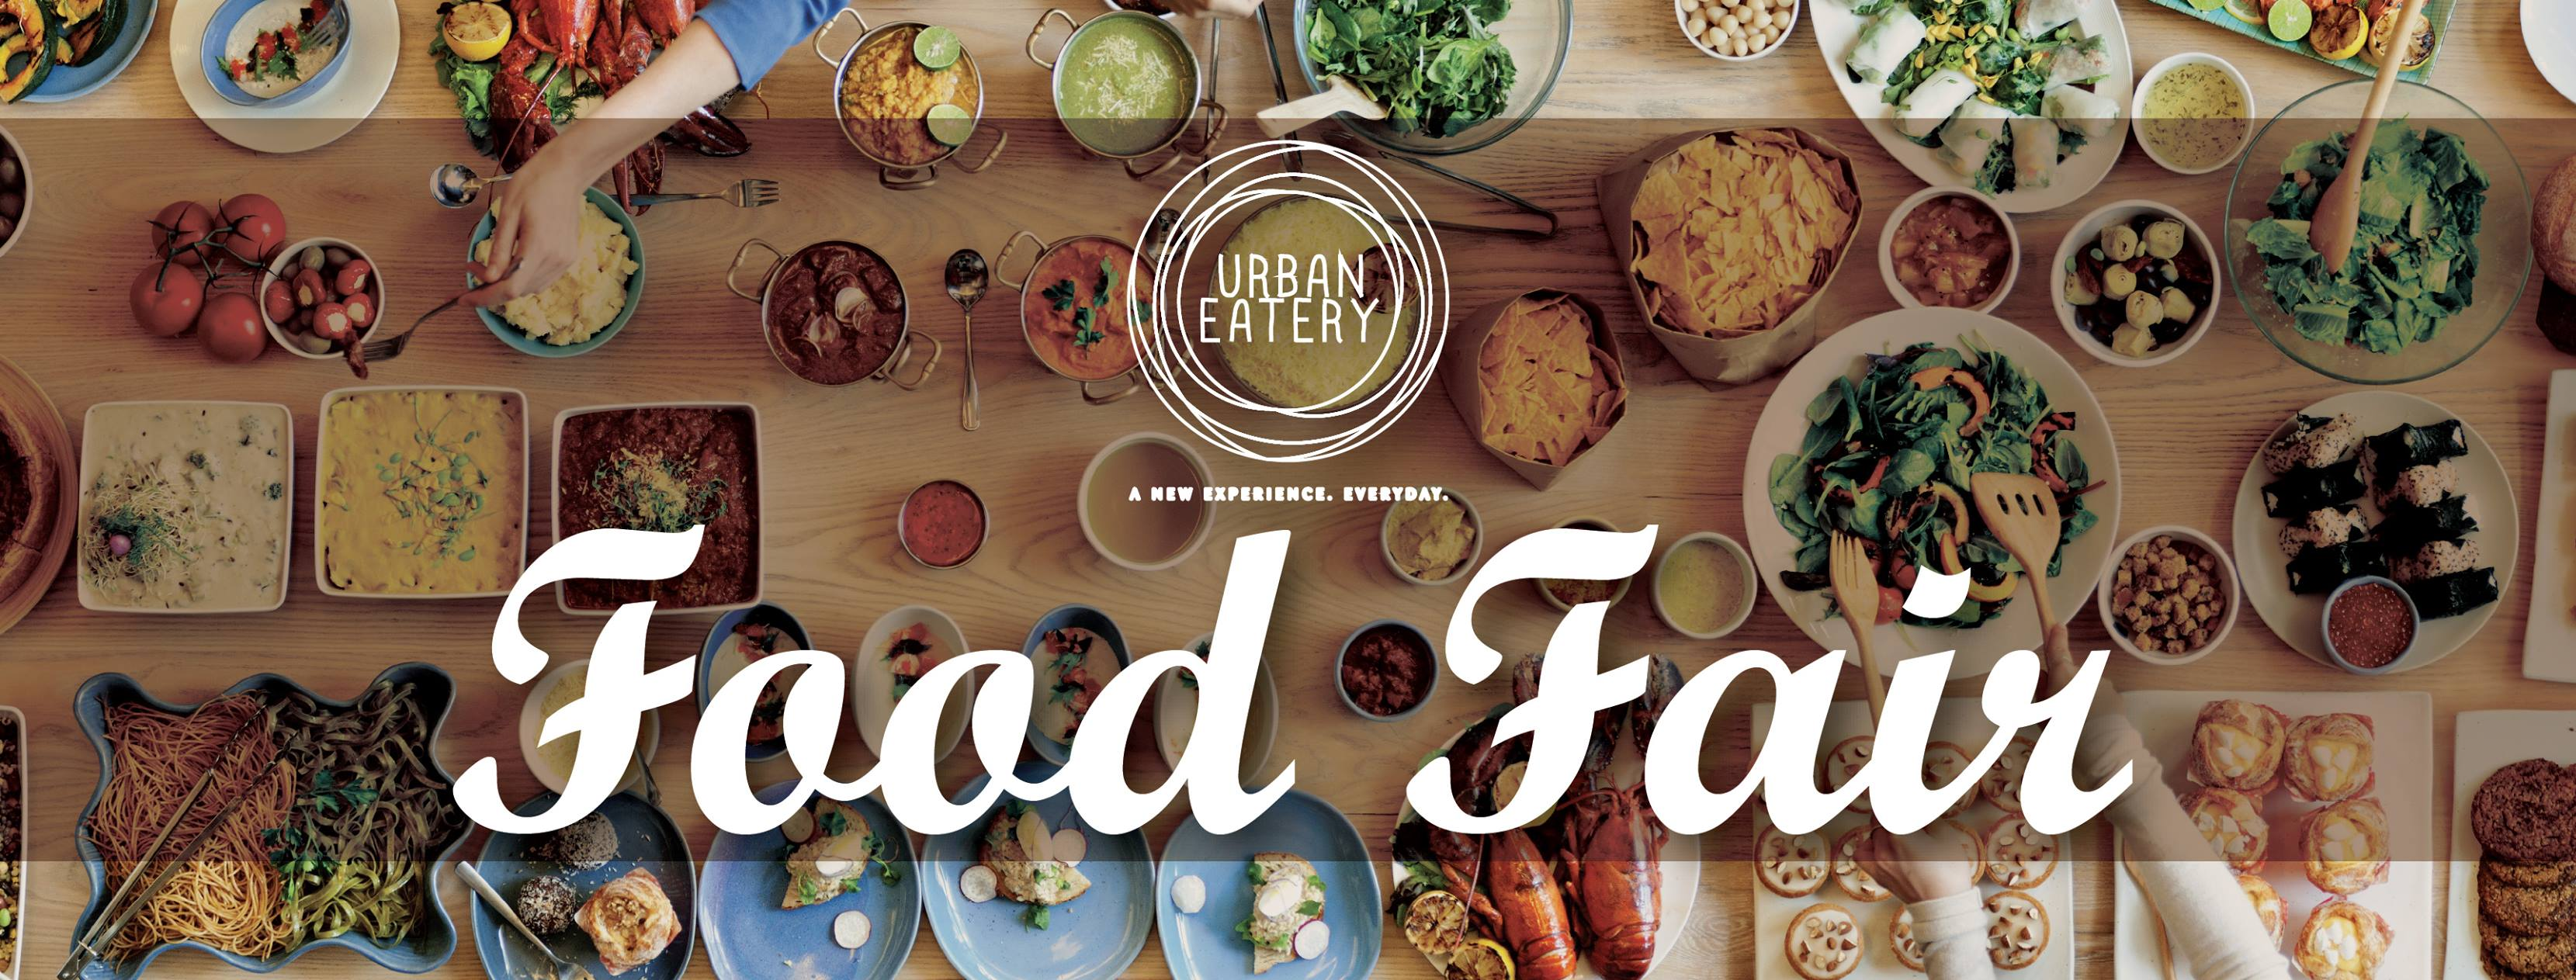 urban eatery food fair 2017